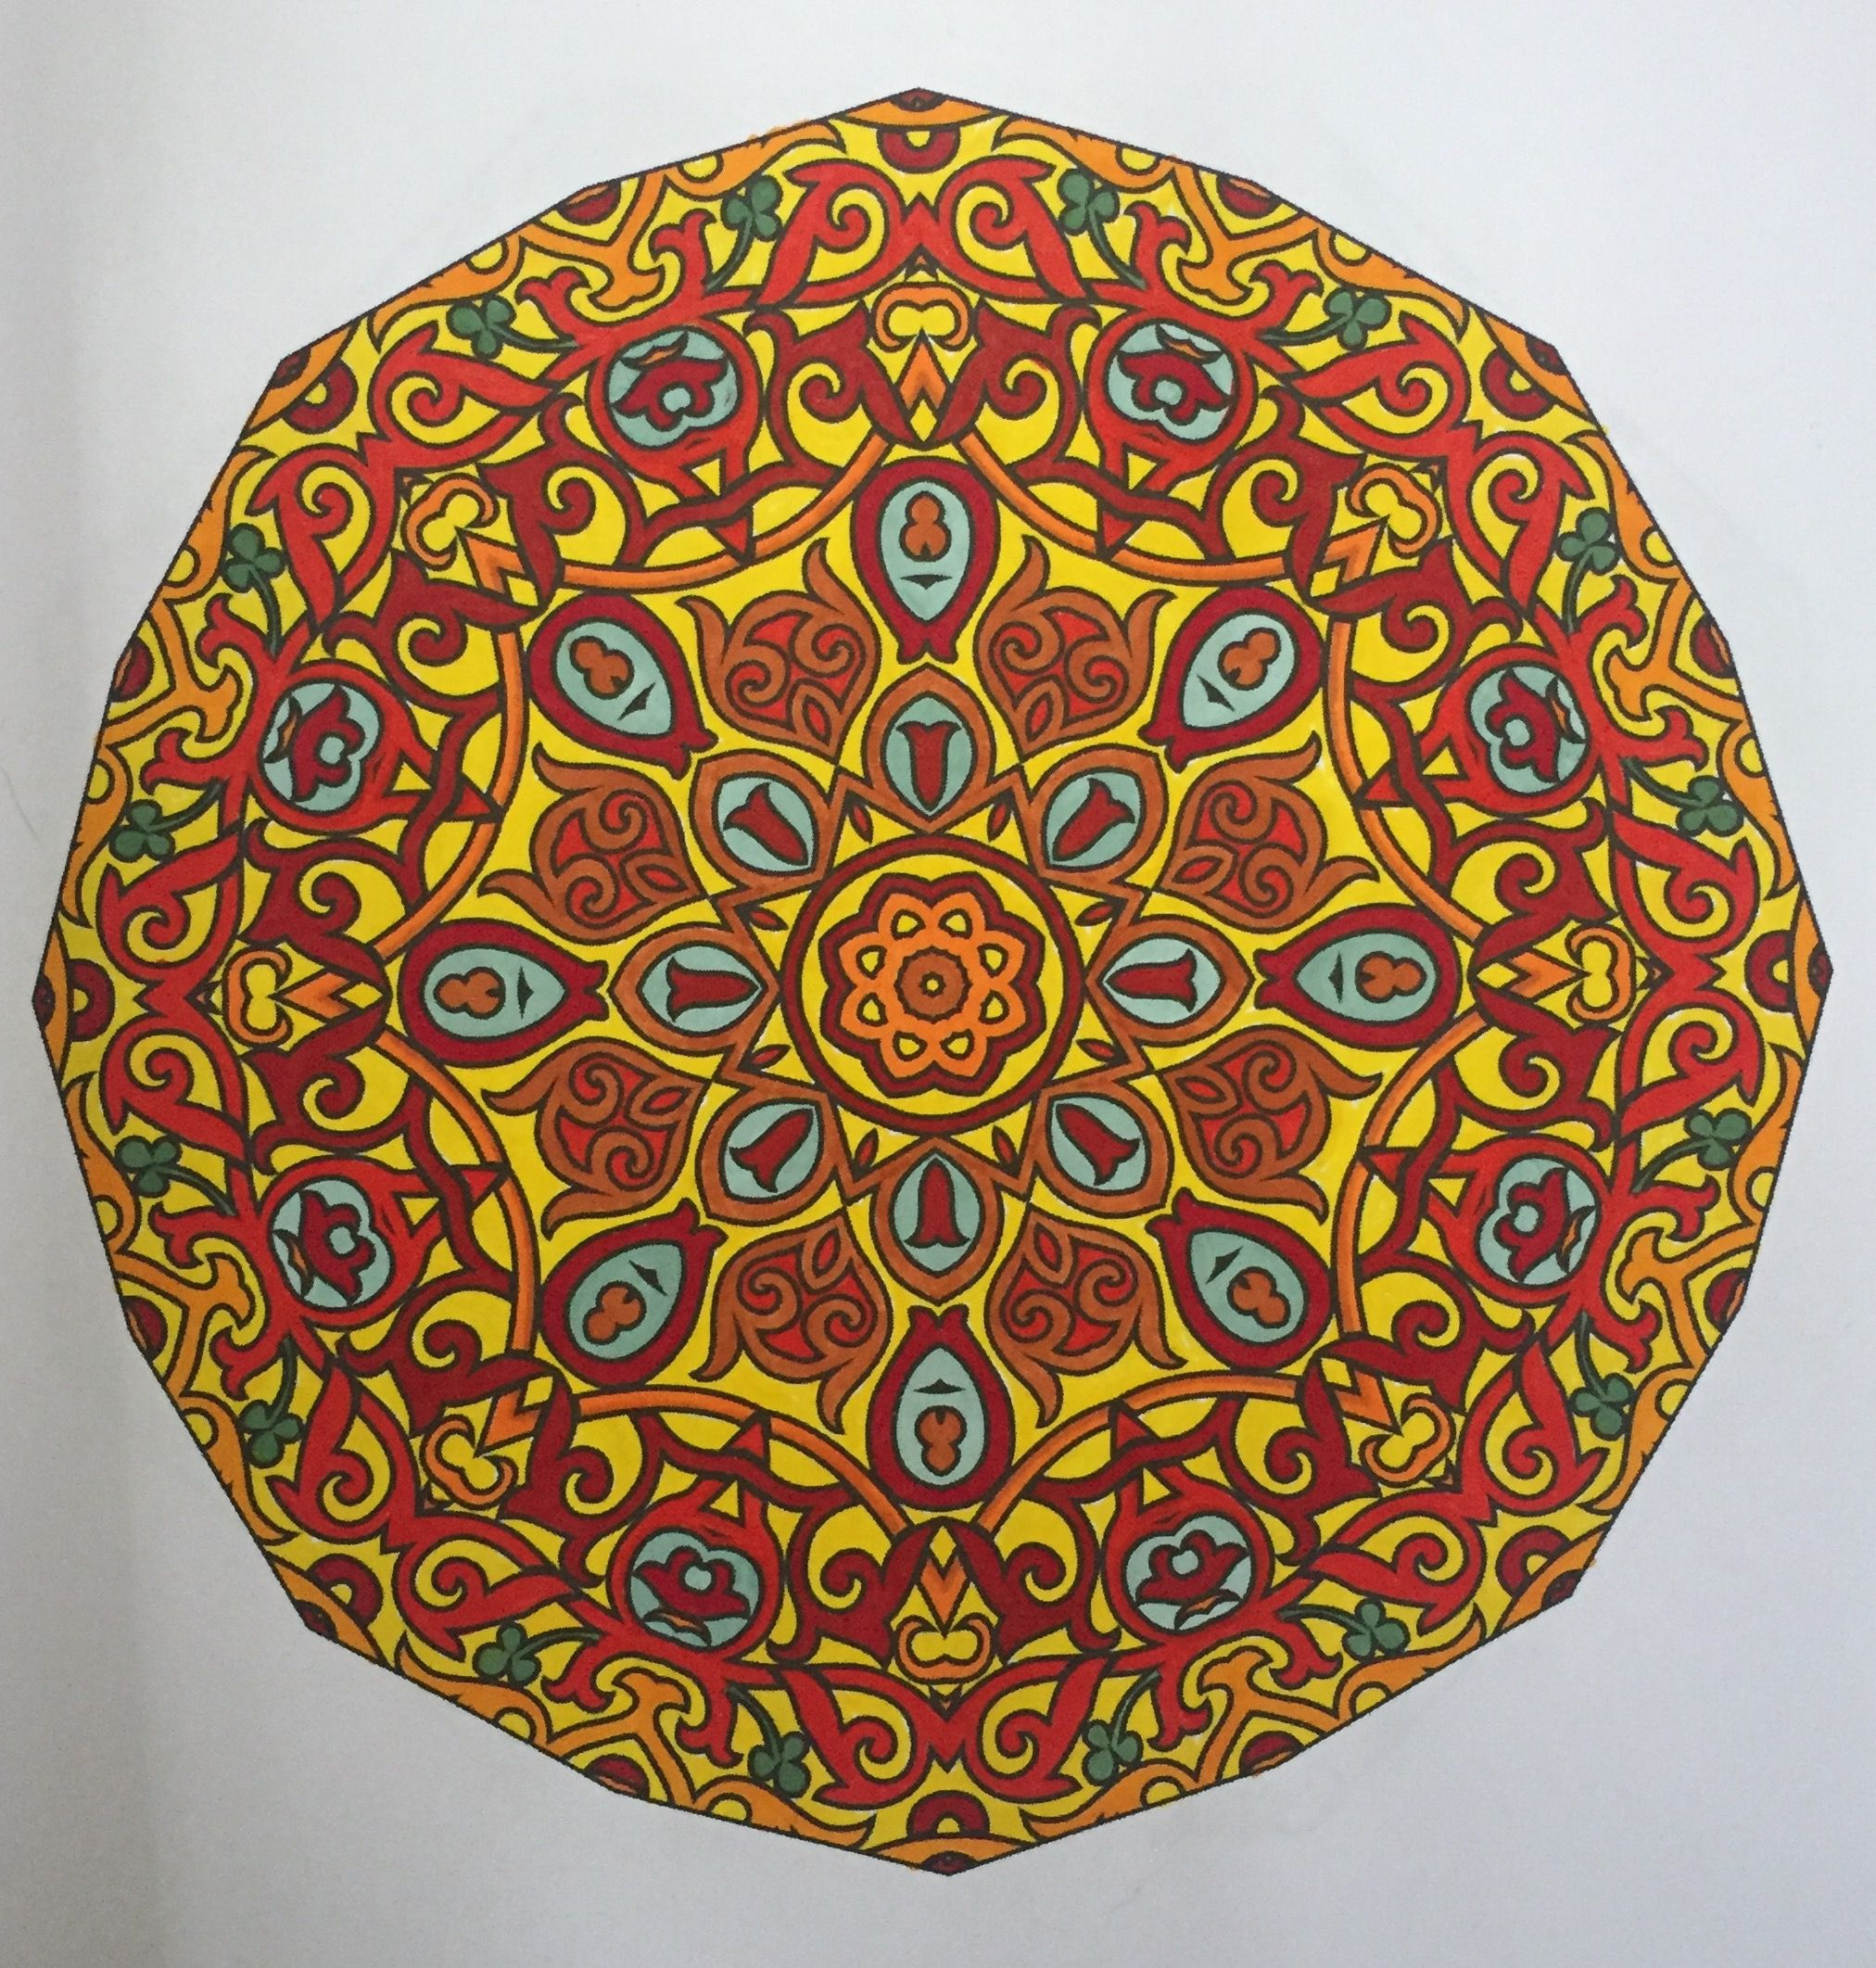 Mandala Design From Kipadoodles Adult Coloring Books Mandalas Book Volume 1